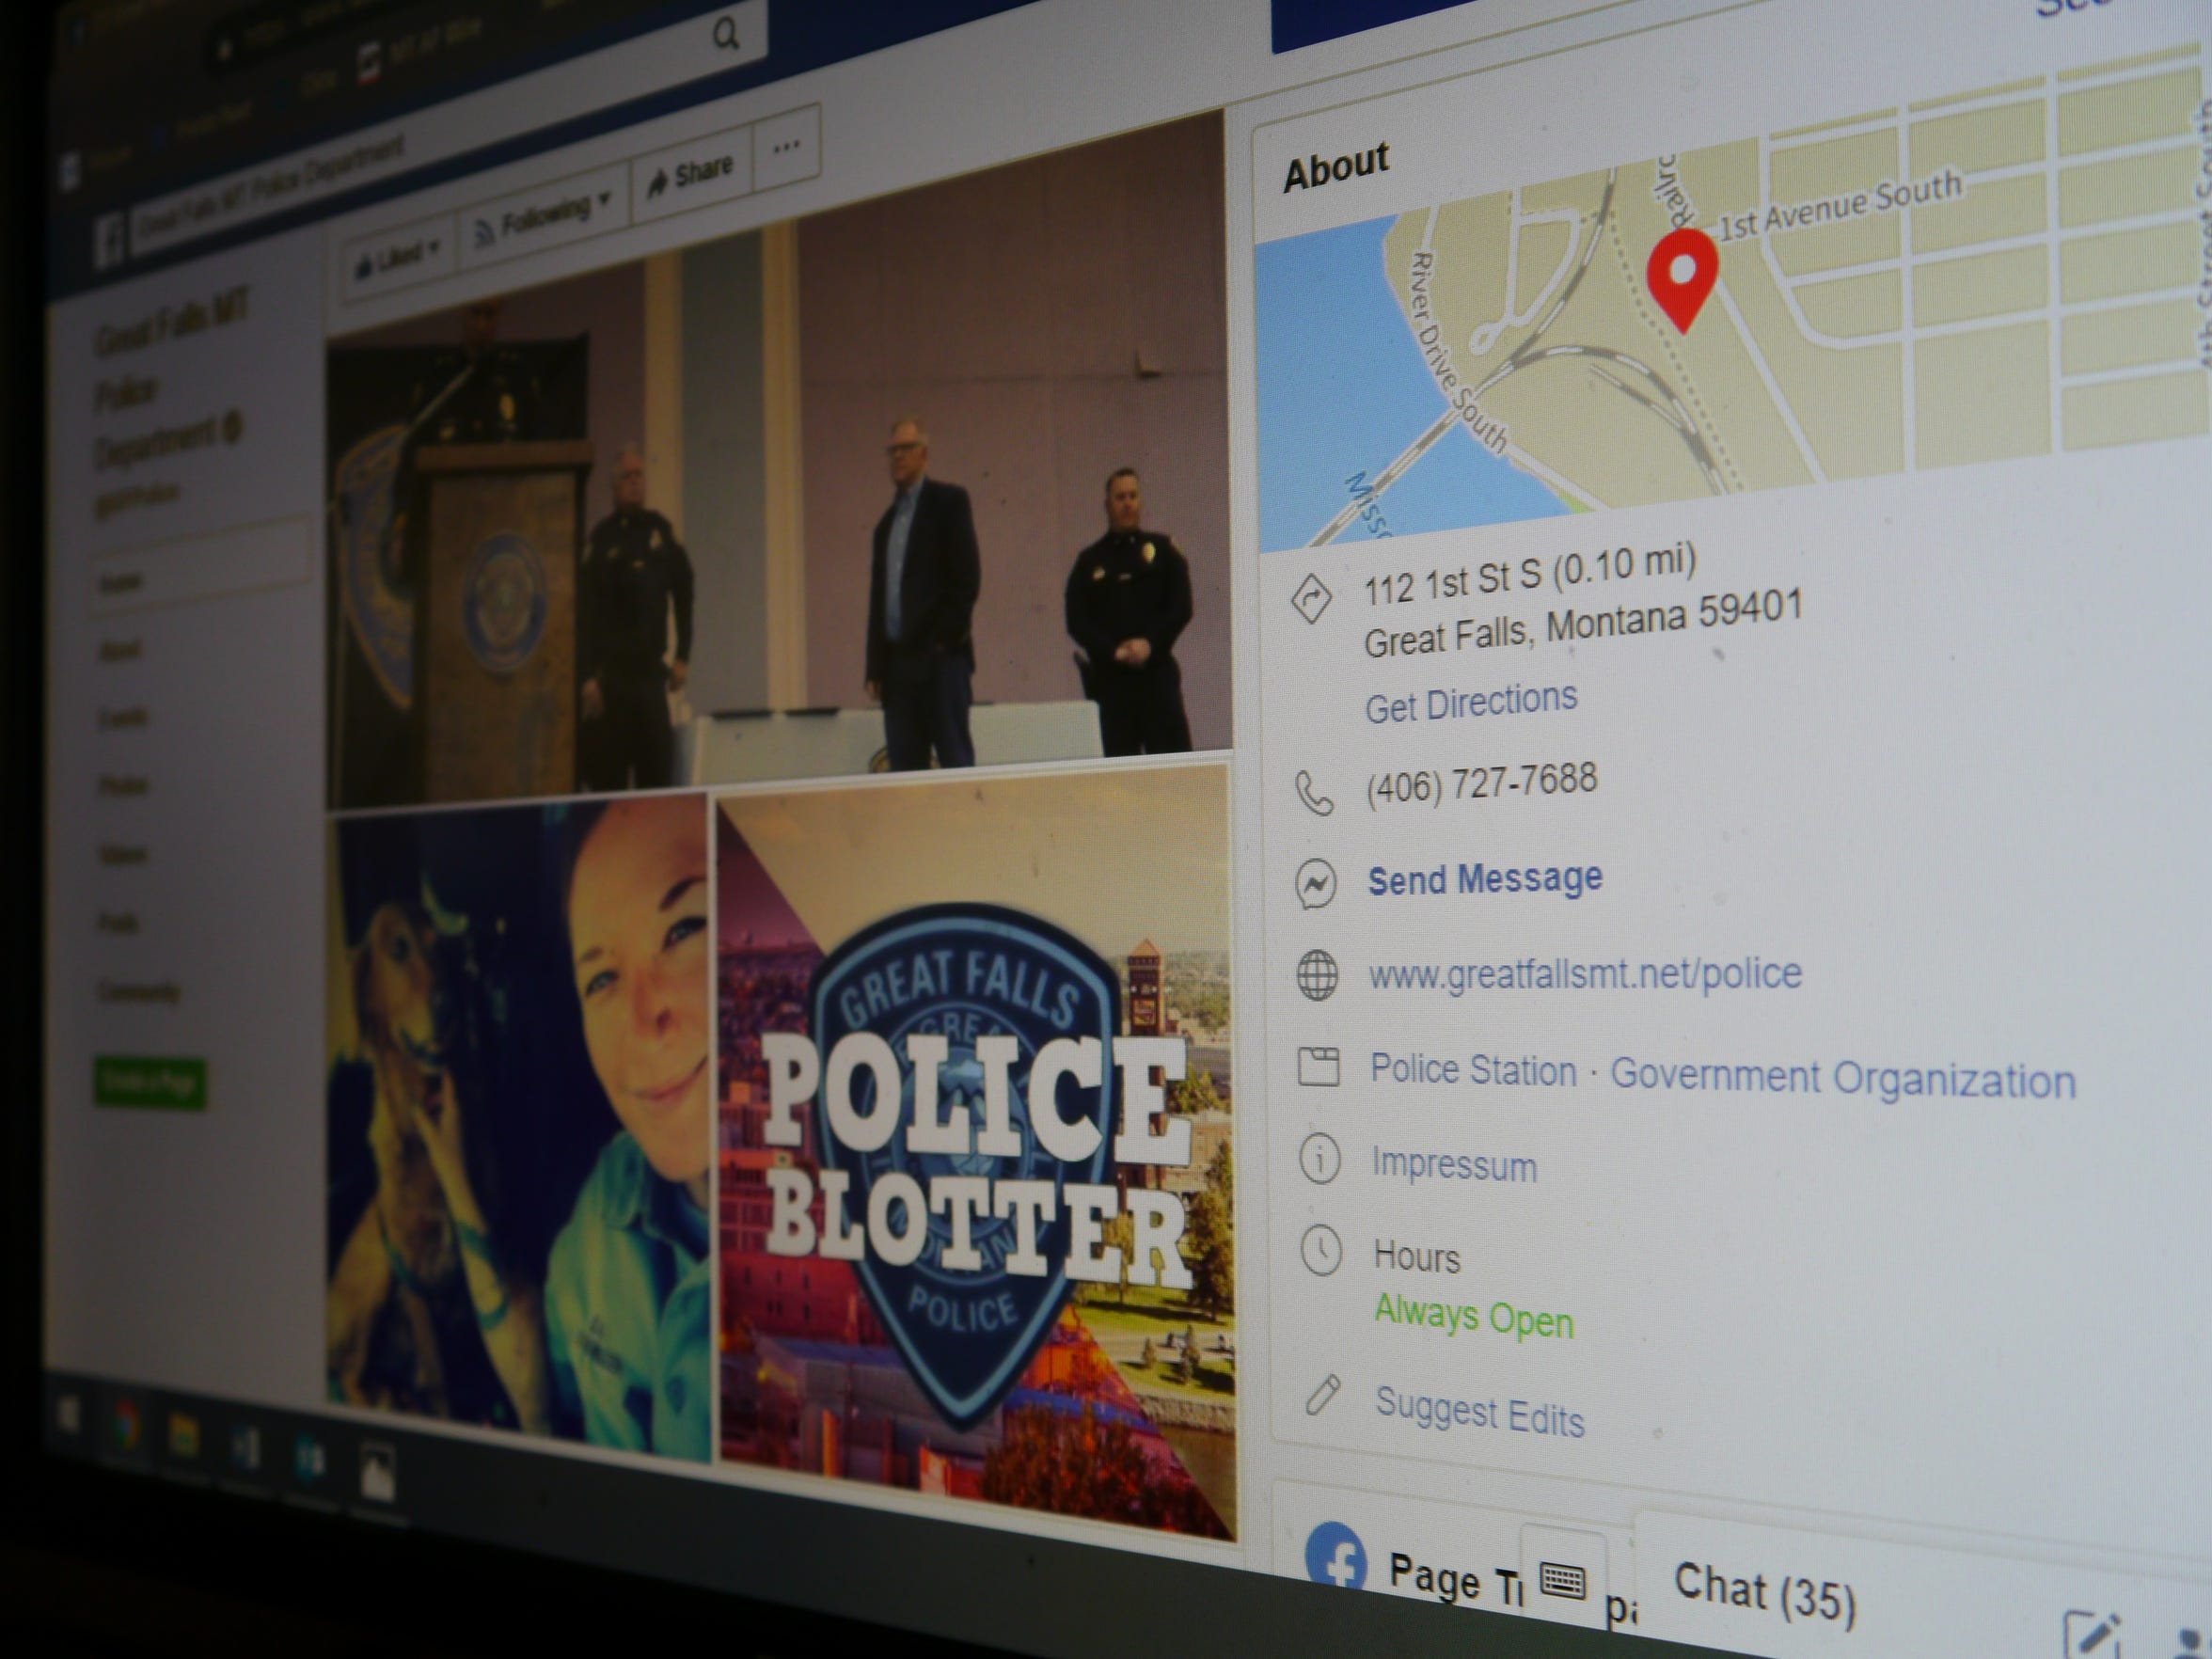 The Great Falls Police Department's Facebook page contains community alerts, highlights officers' service and updates the public on department news.